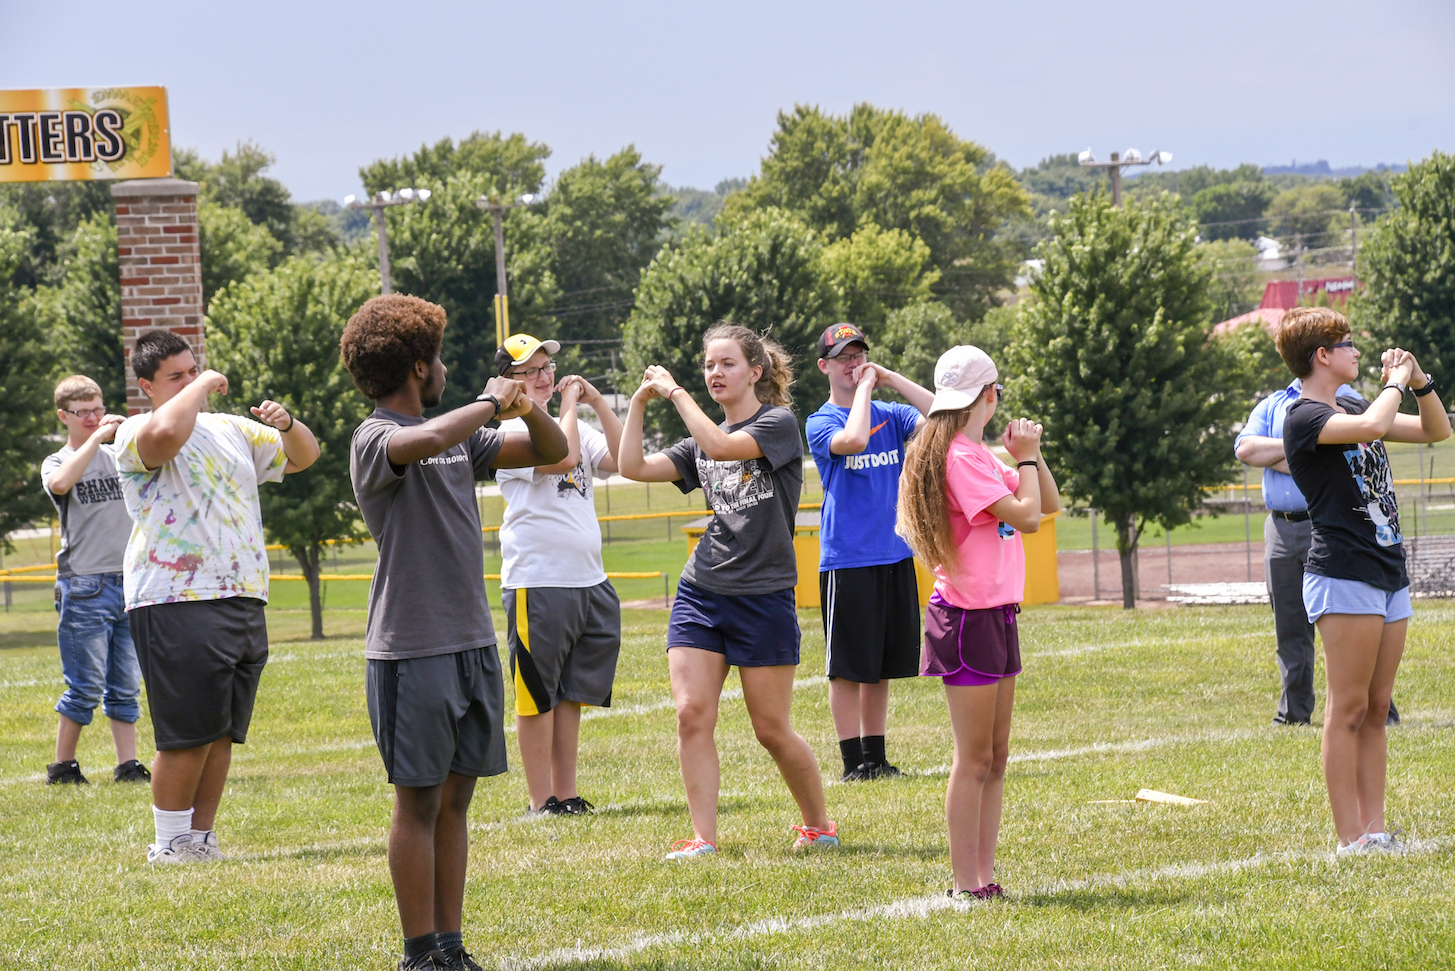 High school marching band practices on a field